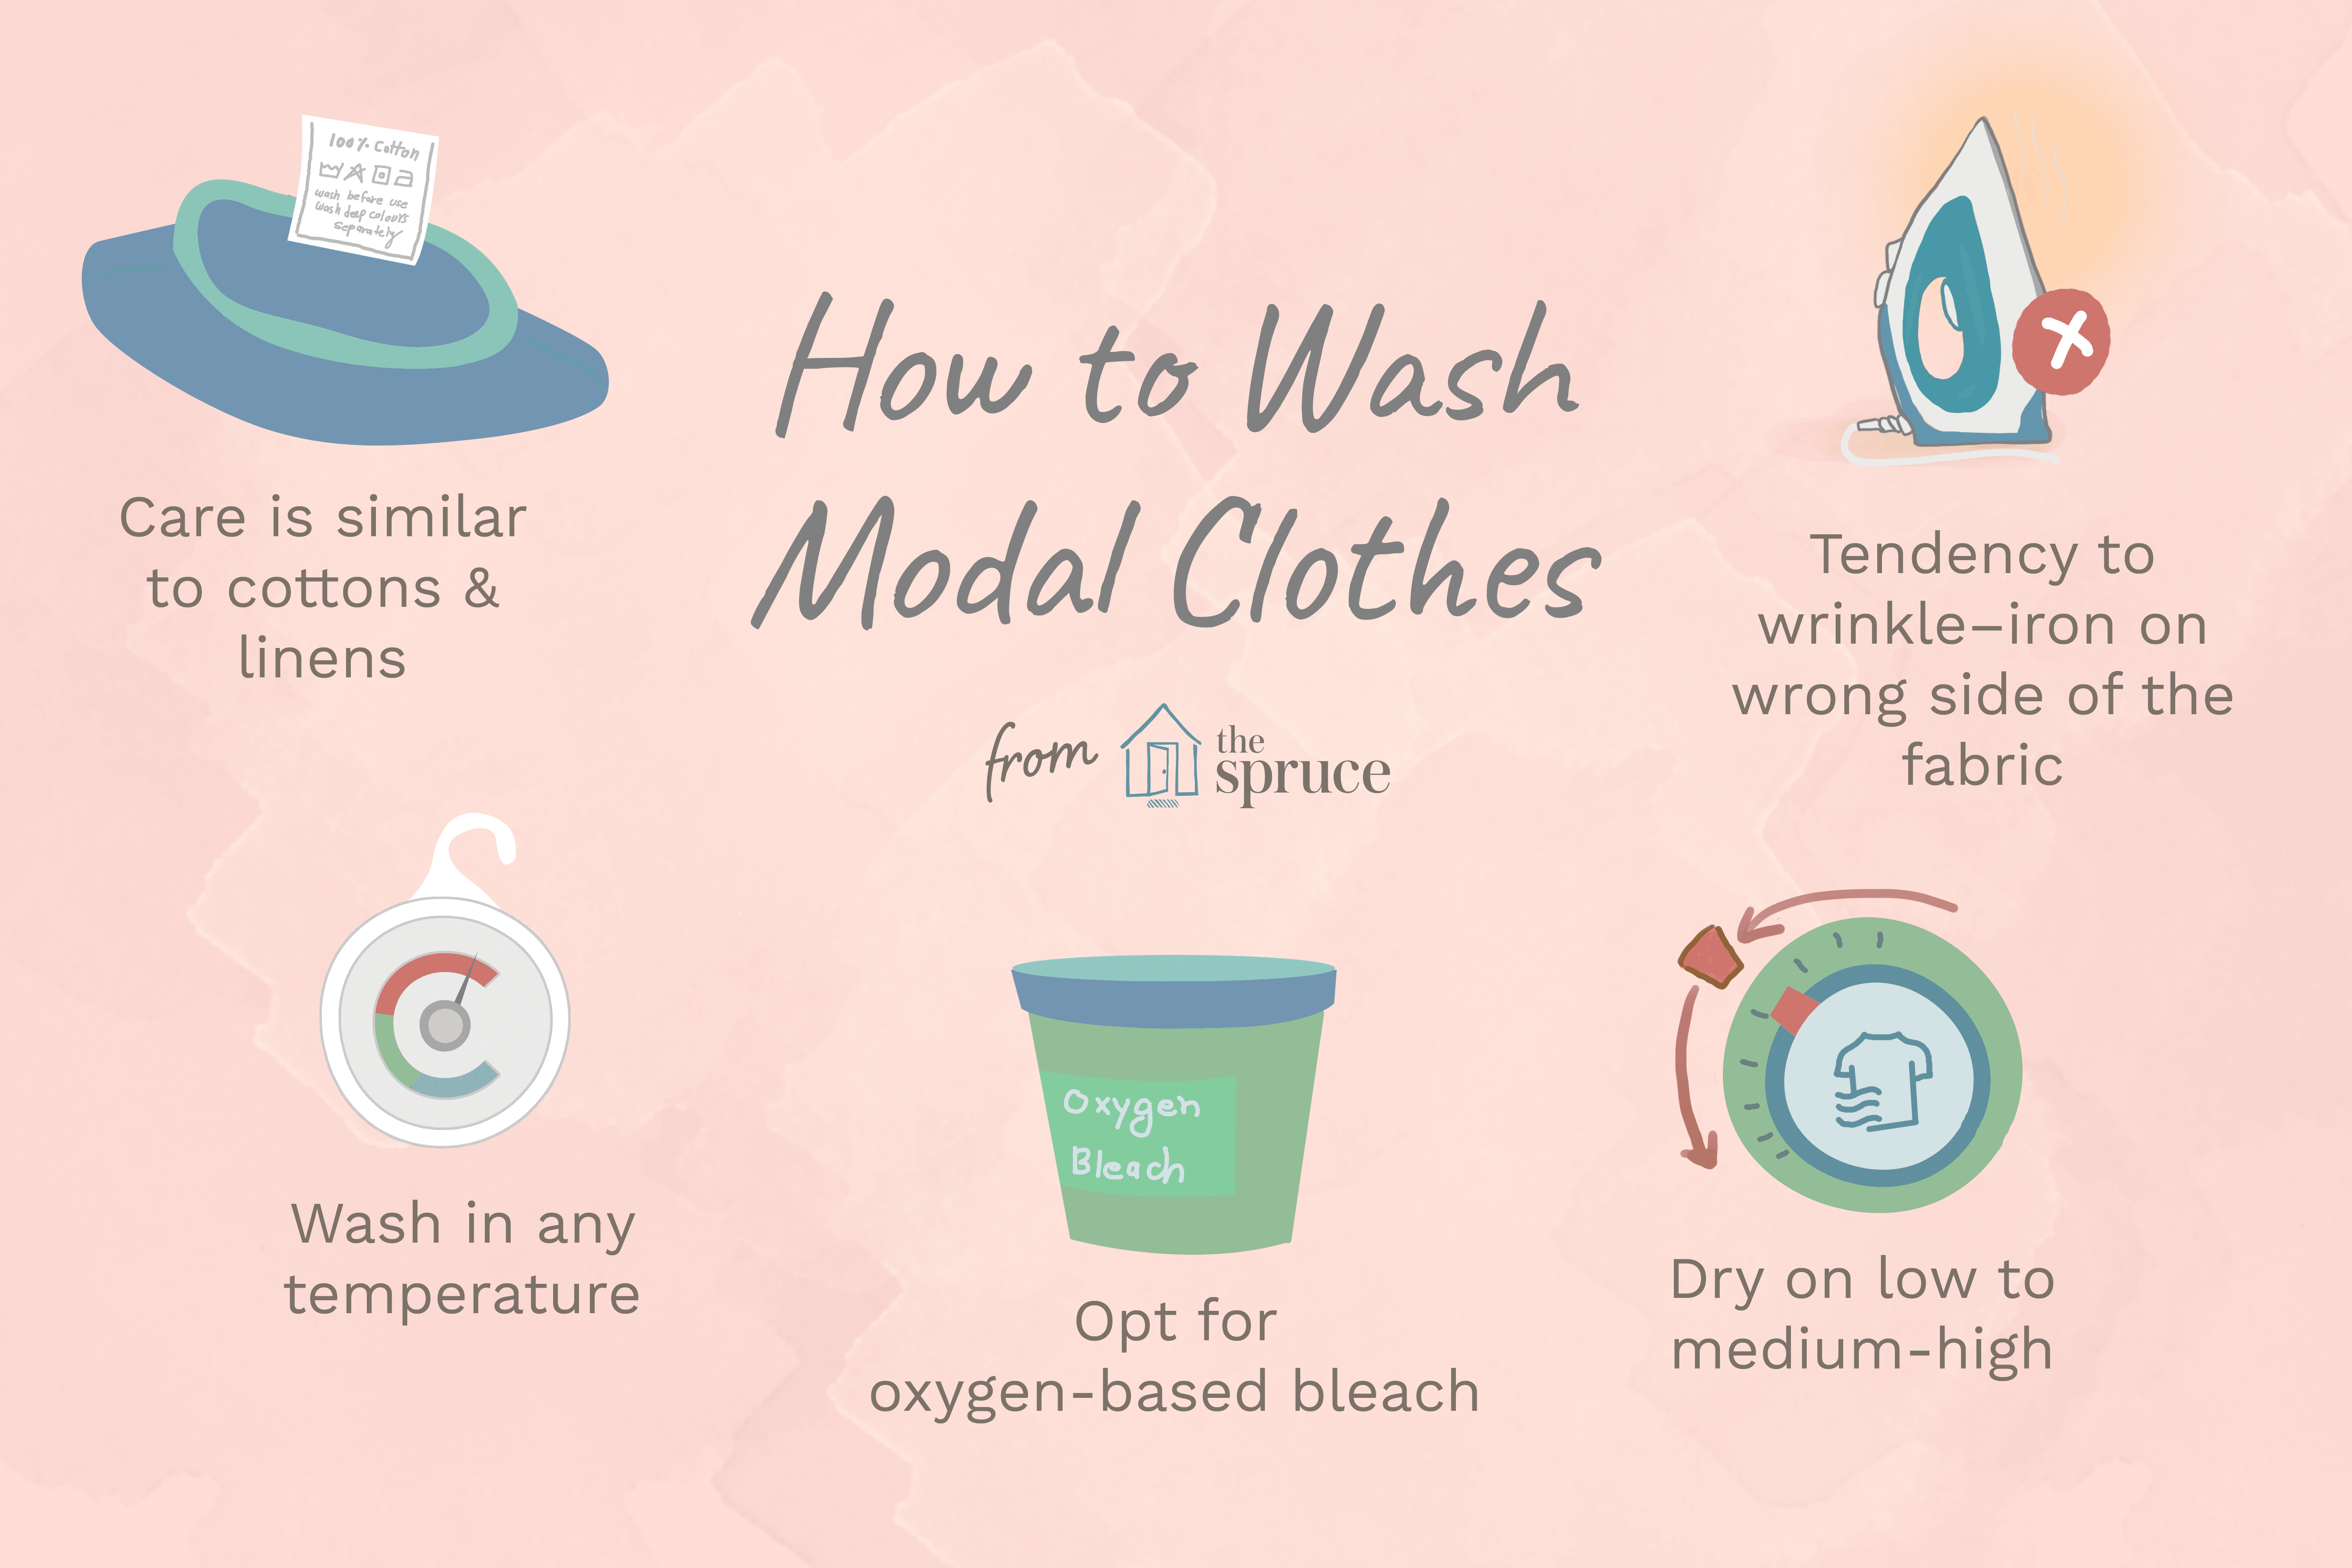 When Colors Bleed In The Laundry Take A Few Quick Steps To Minimize Permanent Damage